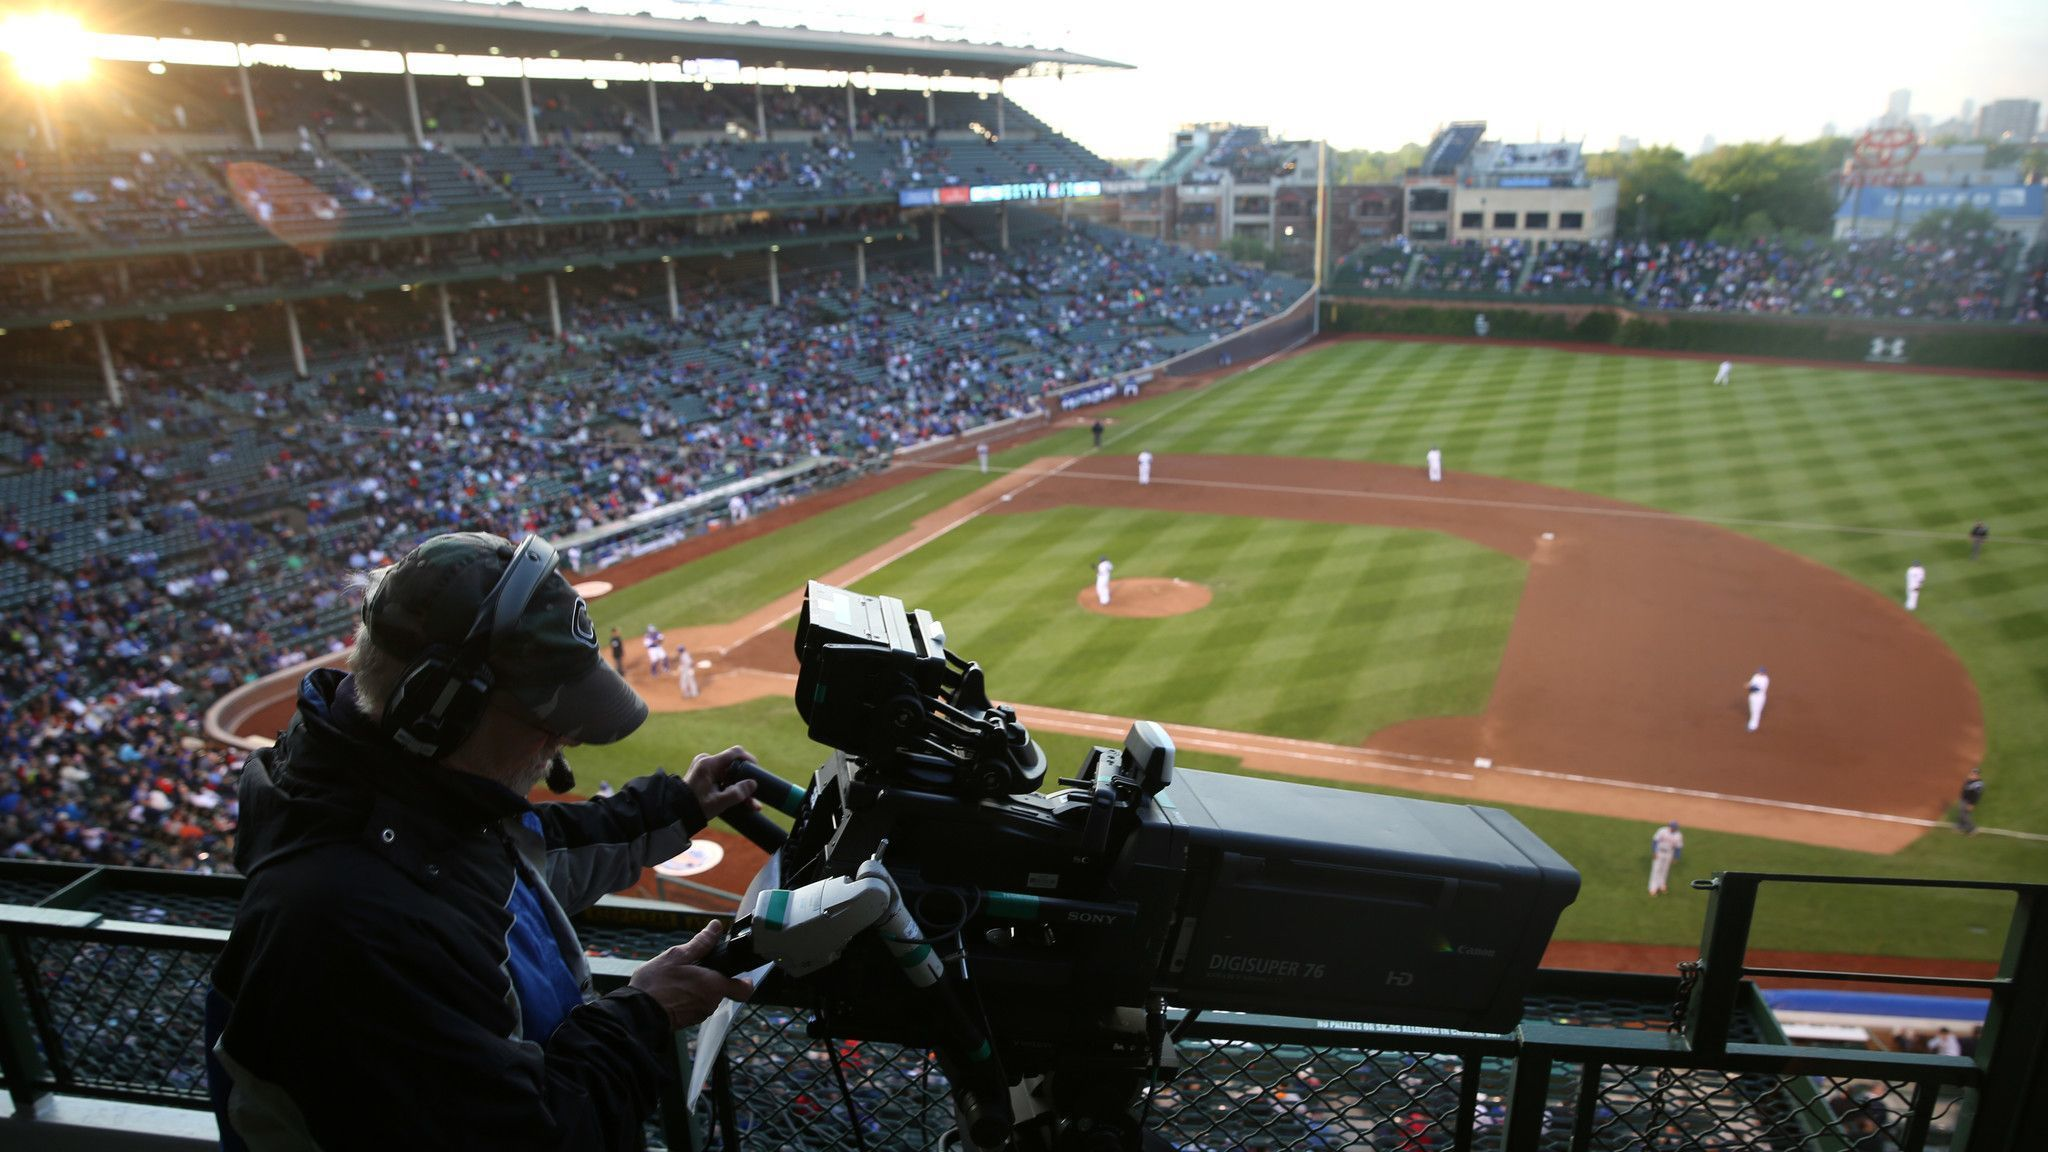 Cubs and Sinclair team up to launch regional sports network in 2020